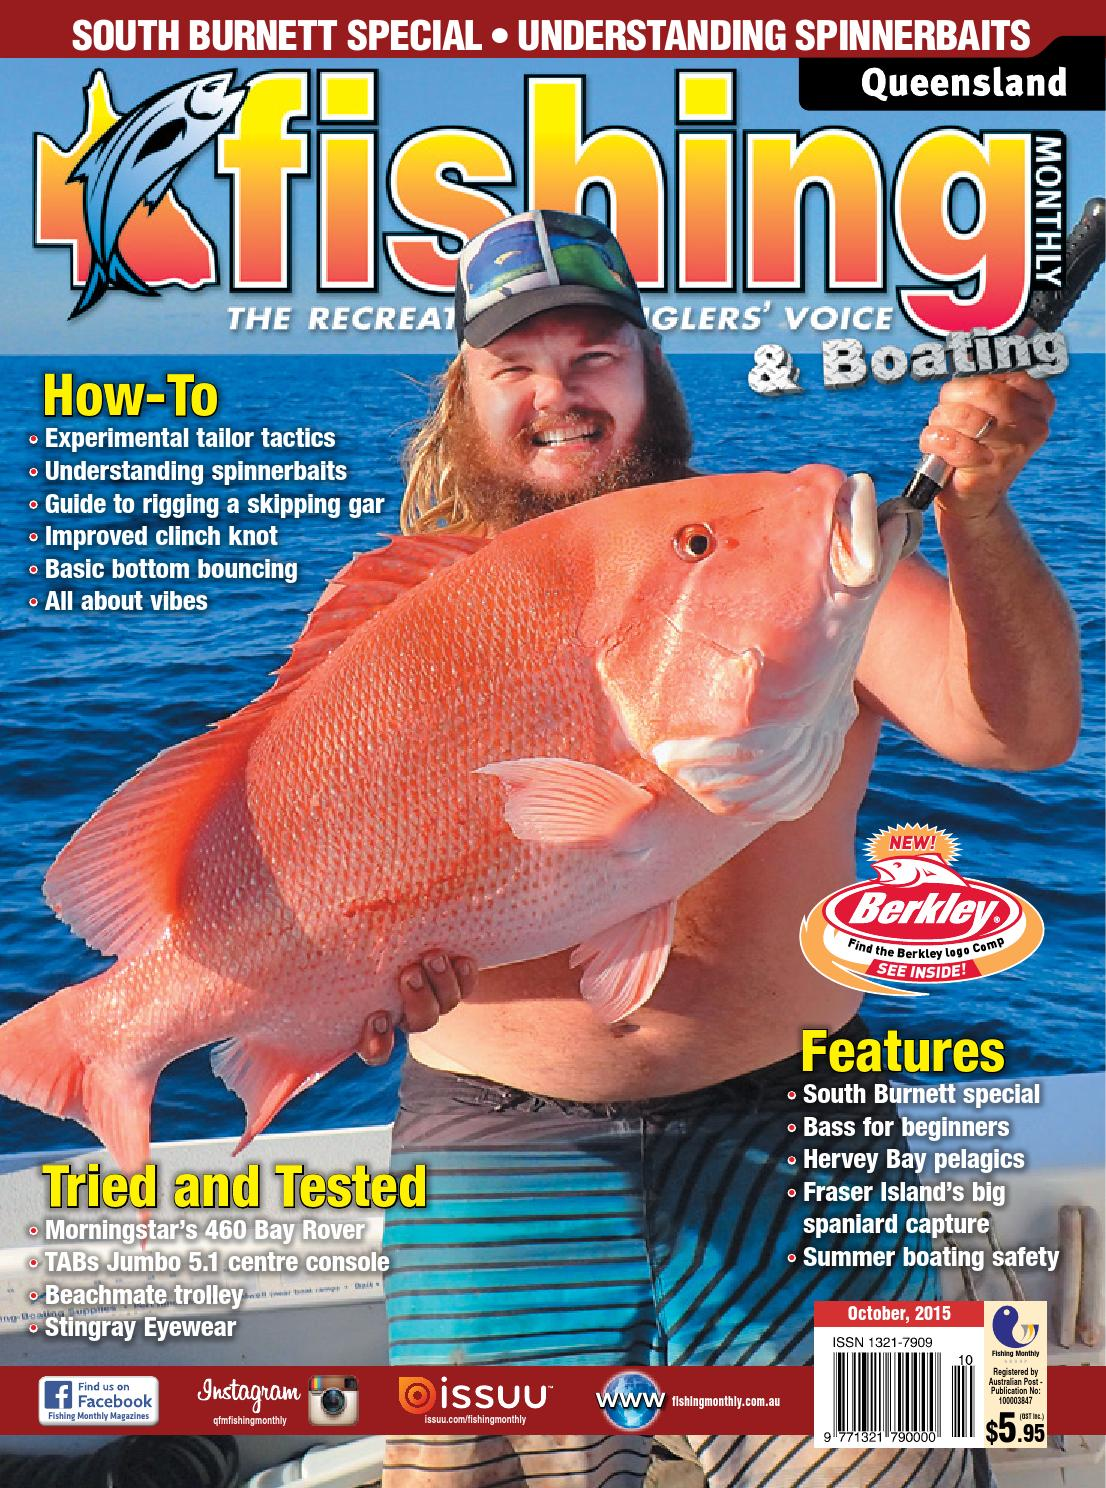 Queensland Fishing Monthly April By Fishing Monthly Issuu - Blue fin boat decalsblue fin sportsman need some advice pageiboats